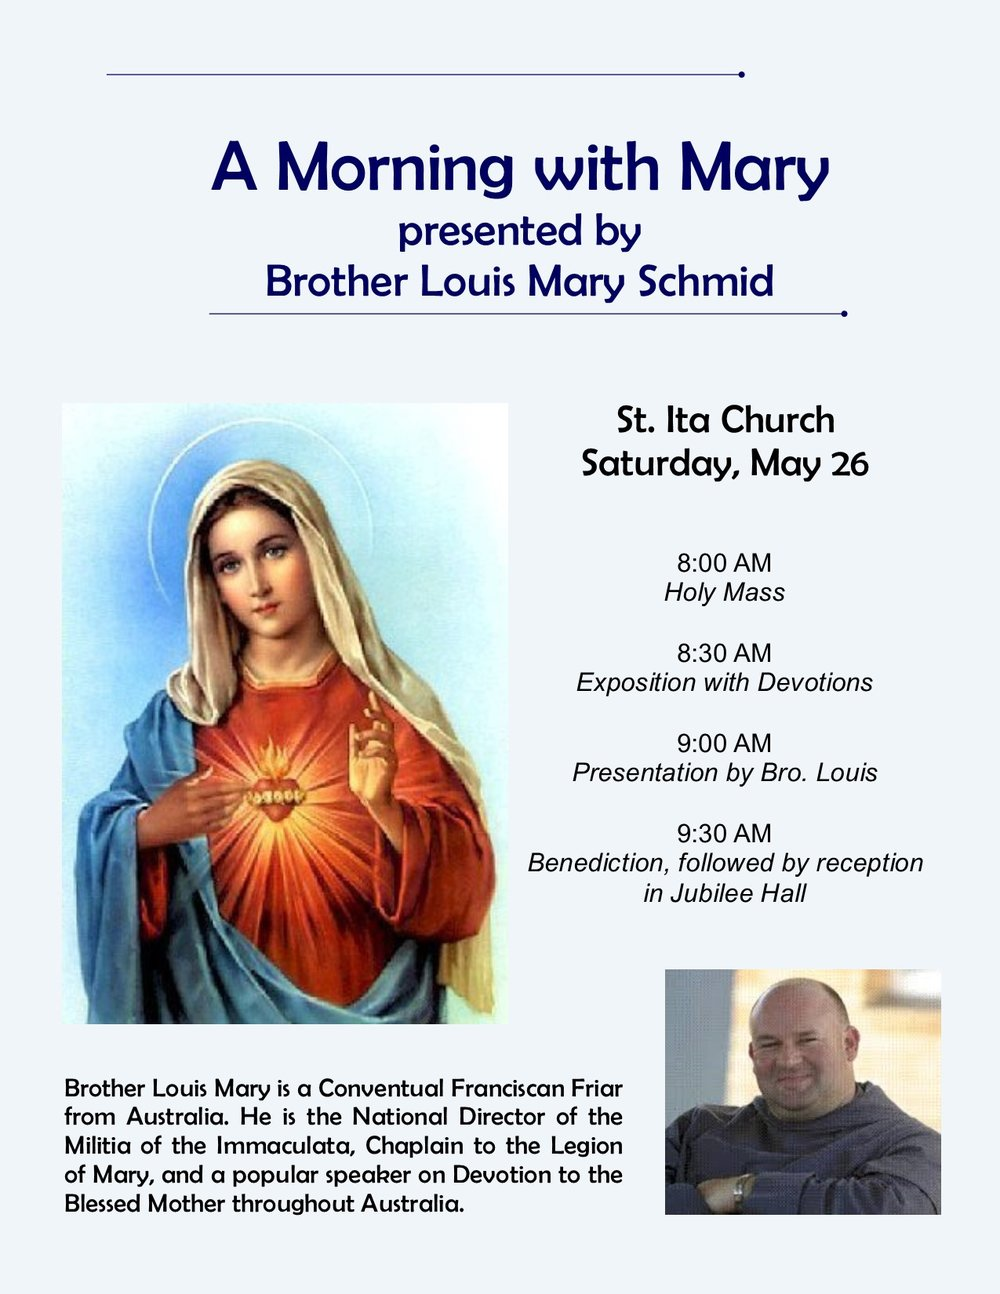 A Morning with mary.jpg